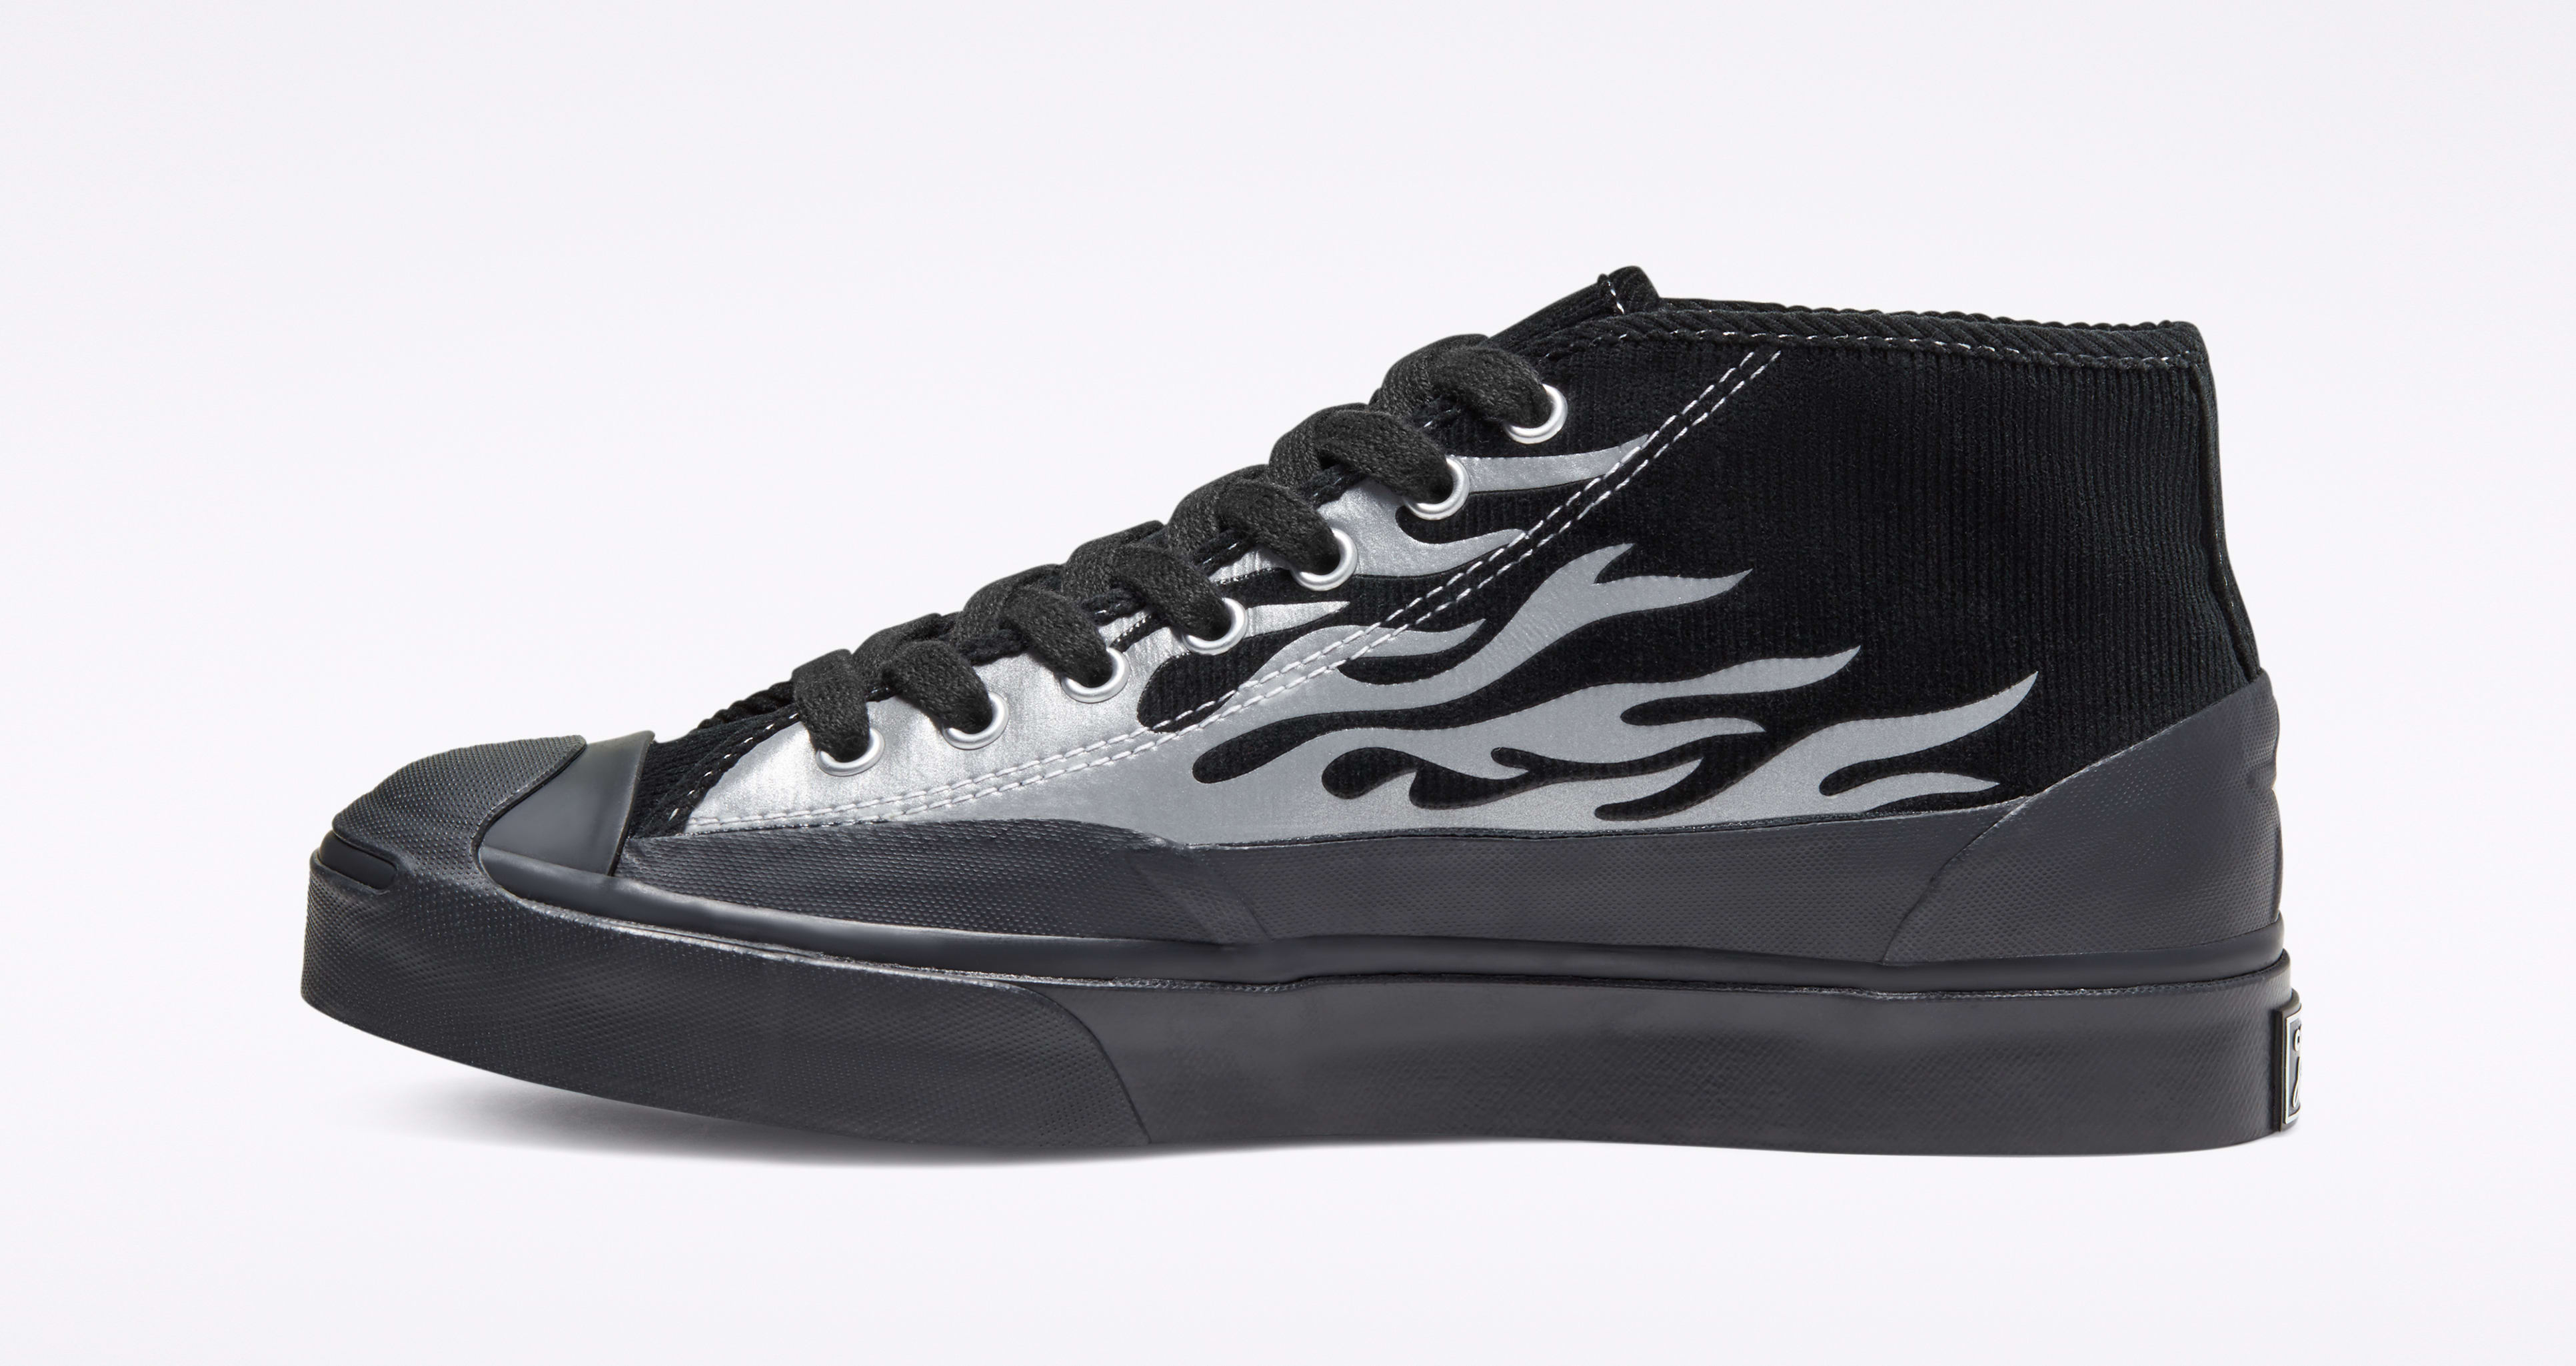 asap-nast-converse-jack-purcell-mid-black-167379c-medial